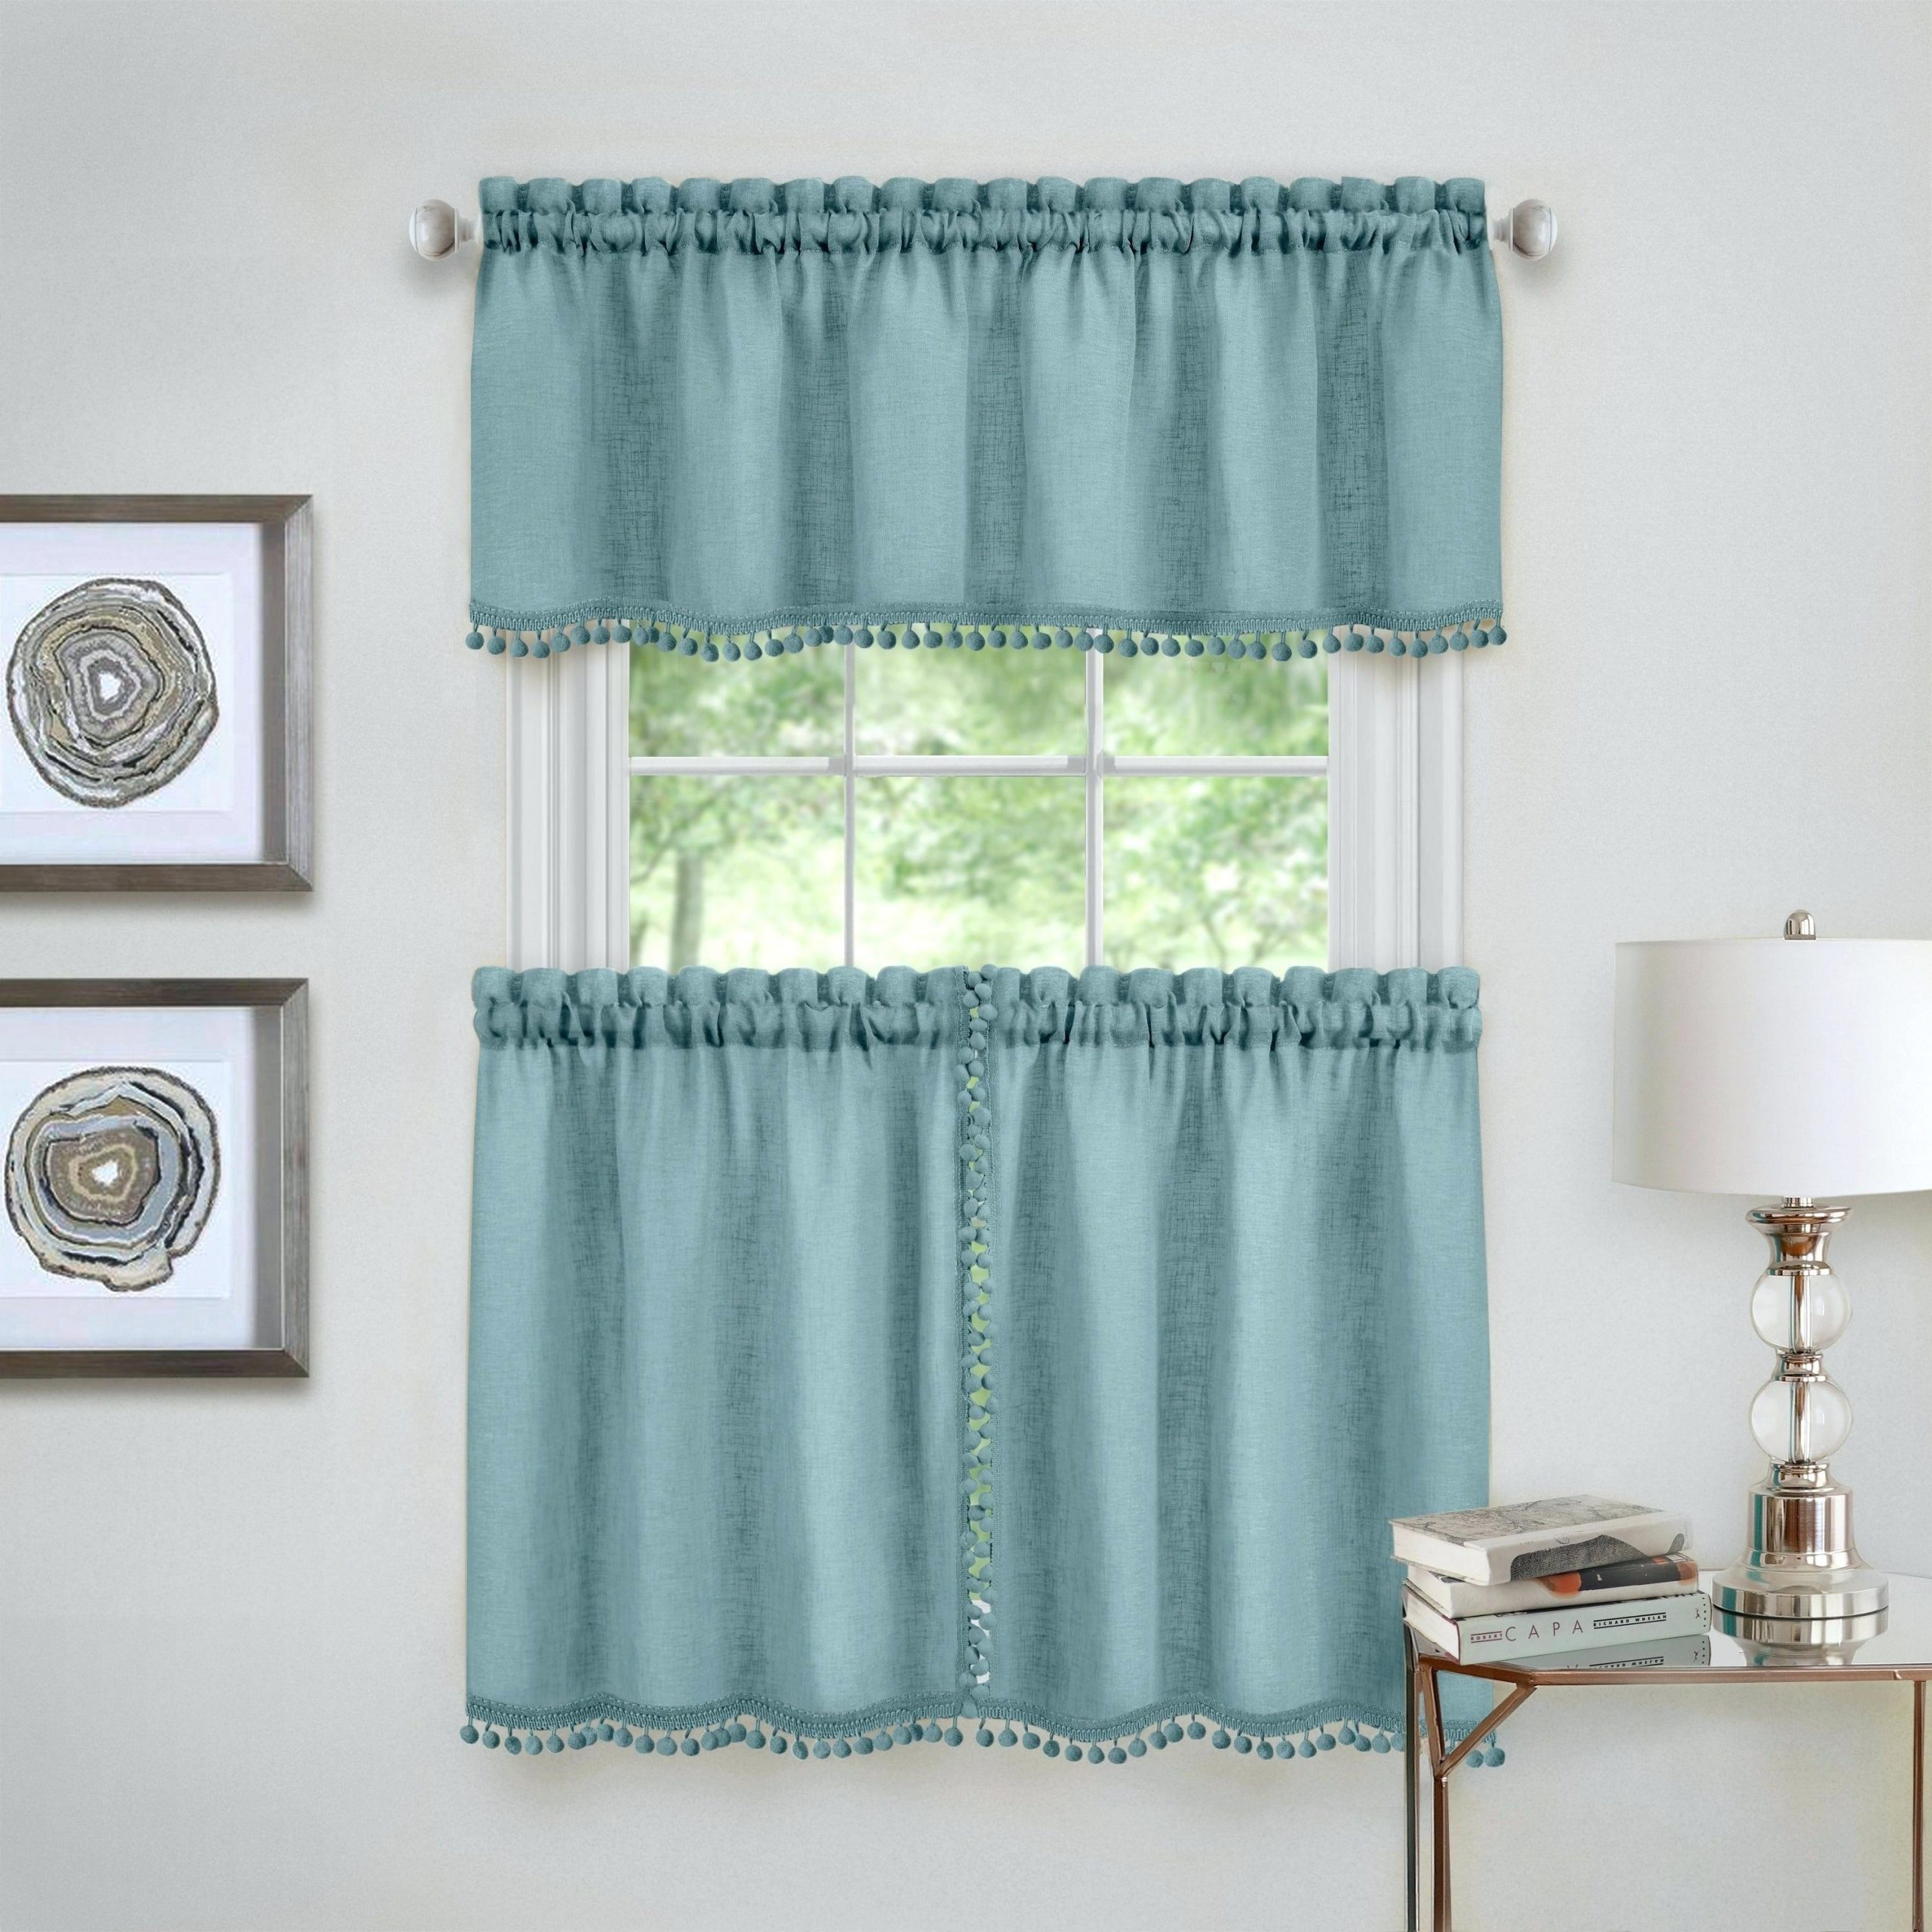 Curtain Sets With Valance – Onsaturn (View 7 of 20)